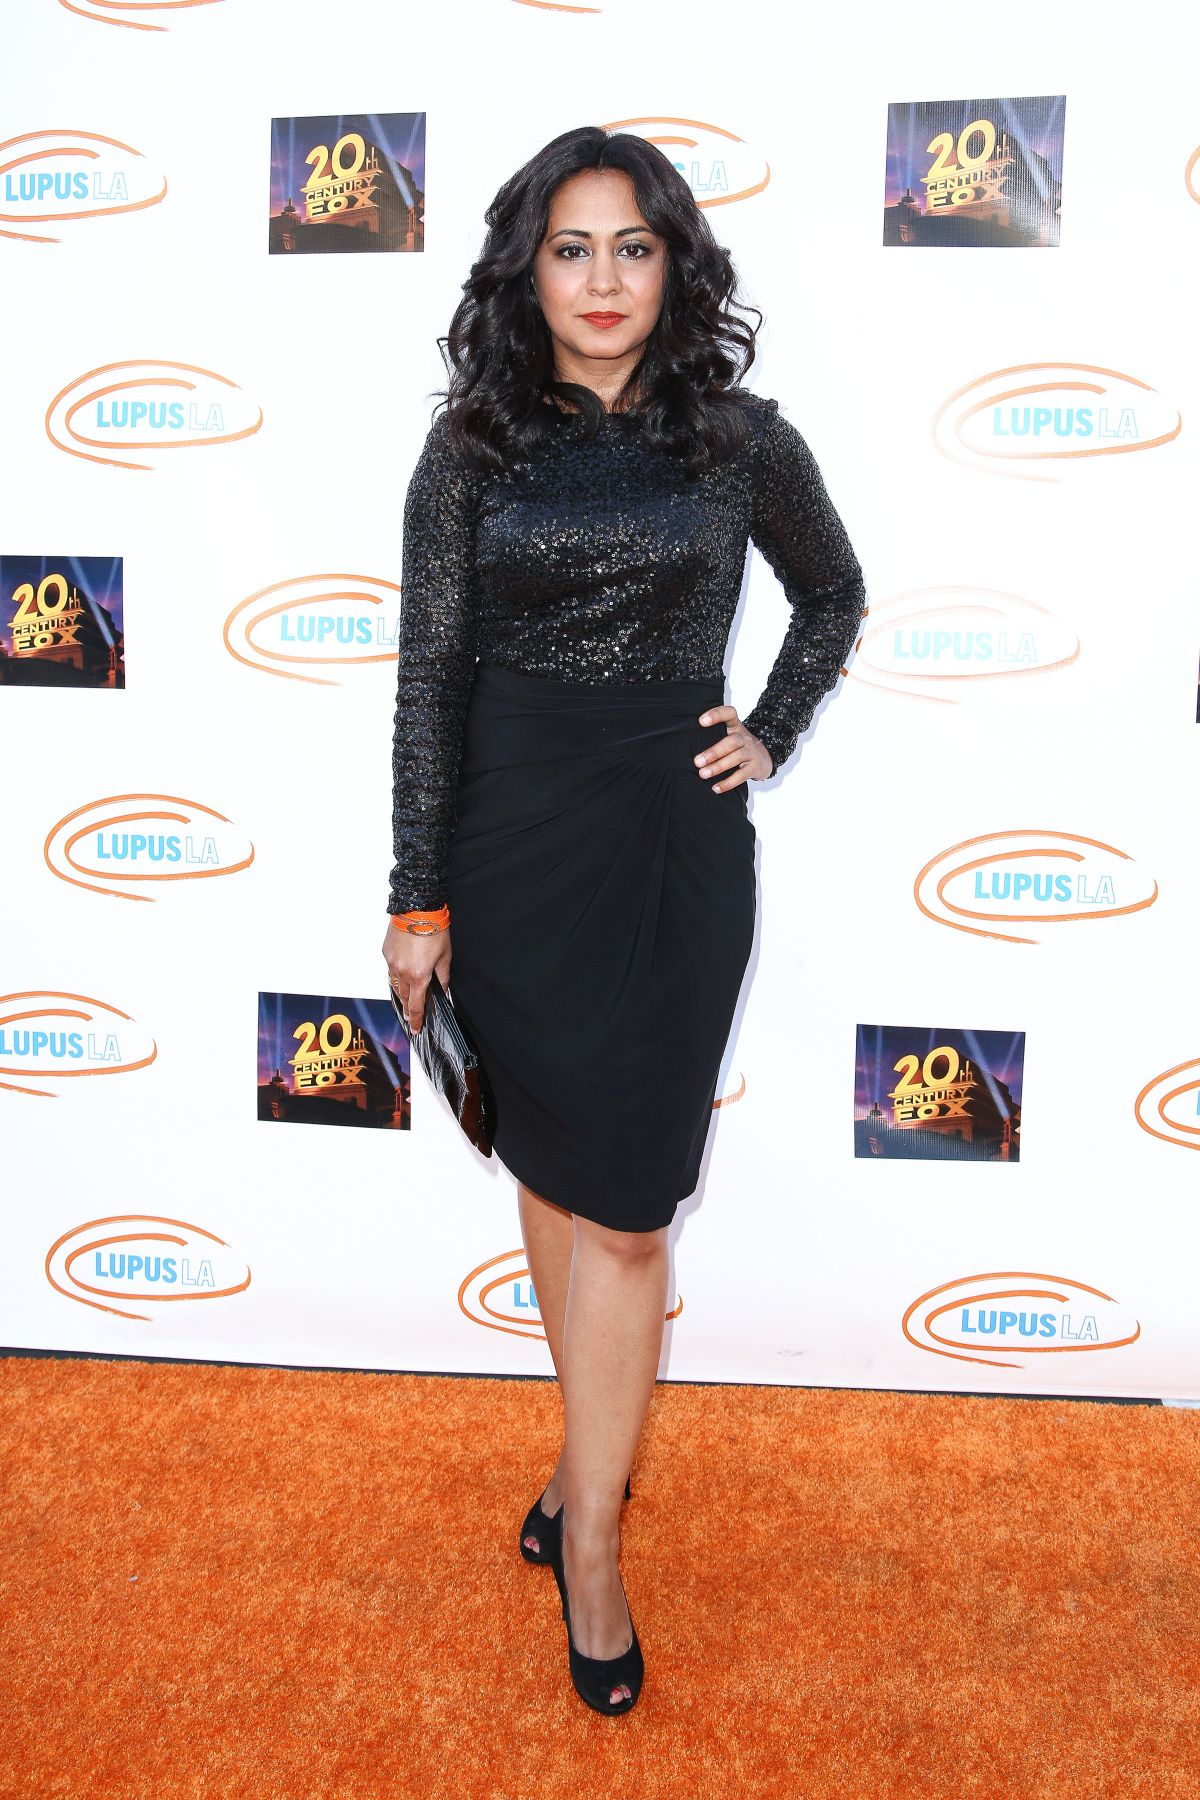 PARMINDER NAGRA at Lupus LA Orange Ball and Night of Superheroes